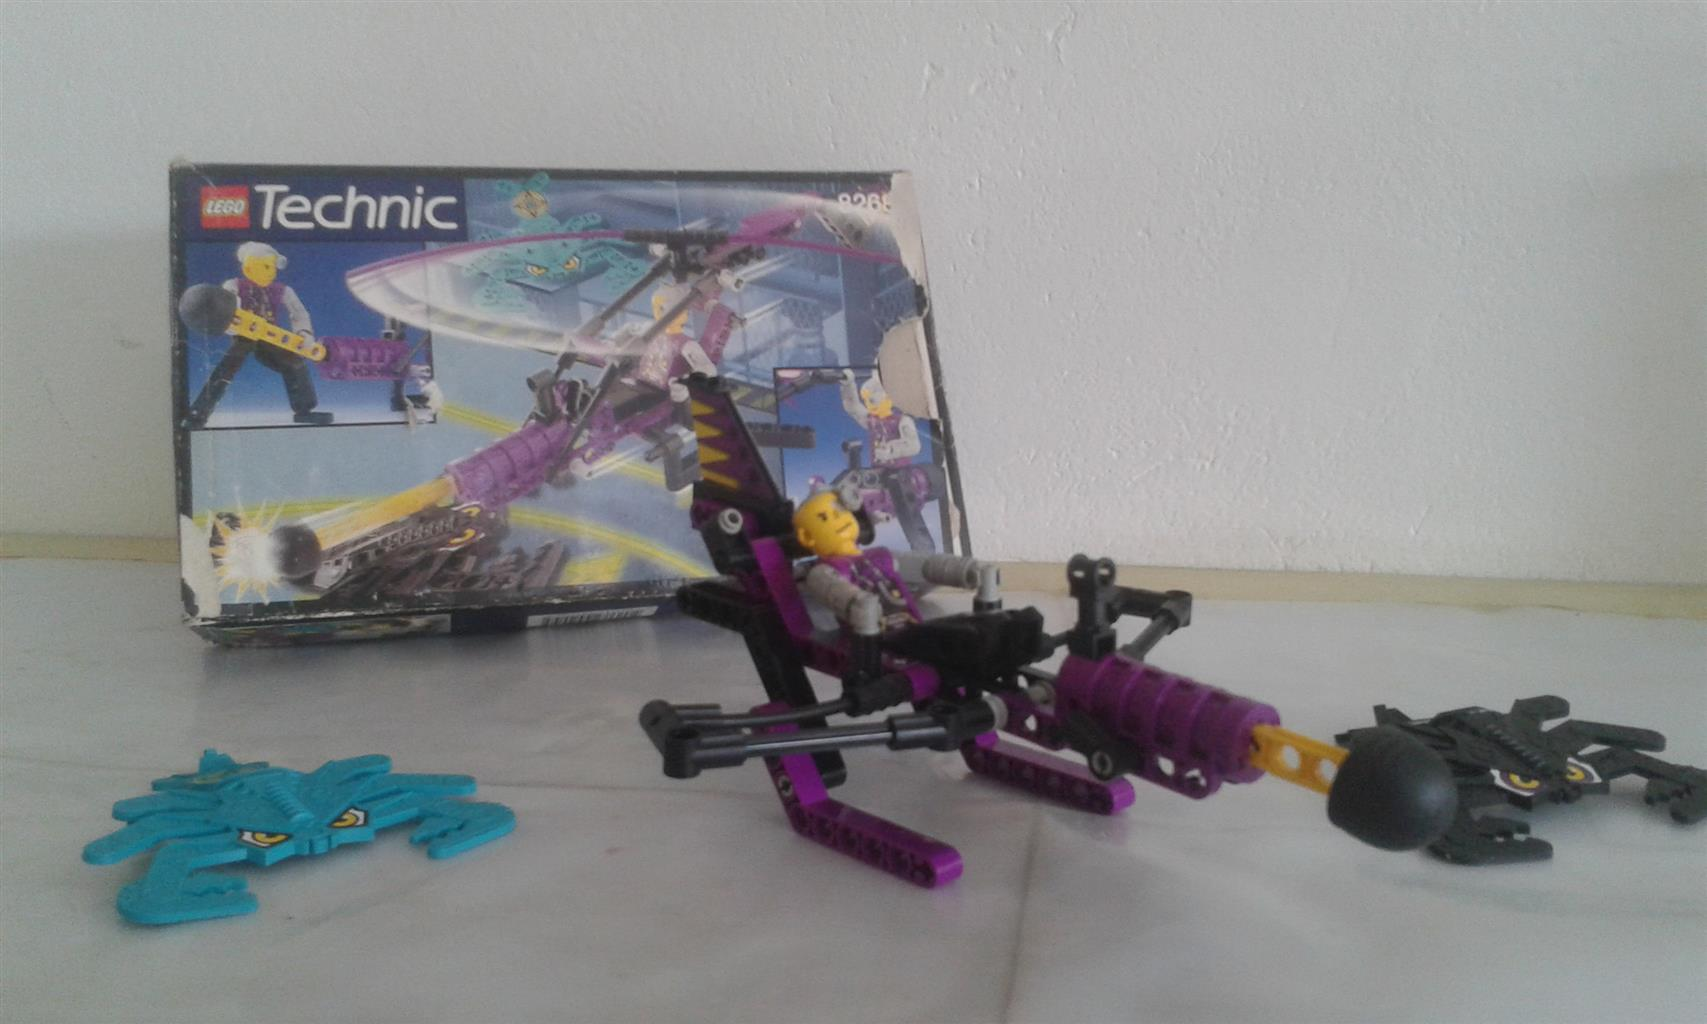 Old Lego Technic Set 6268 for sale